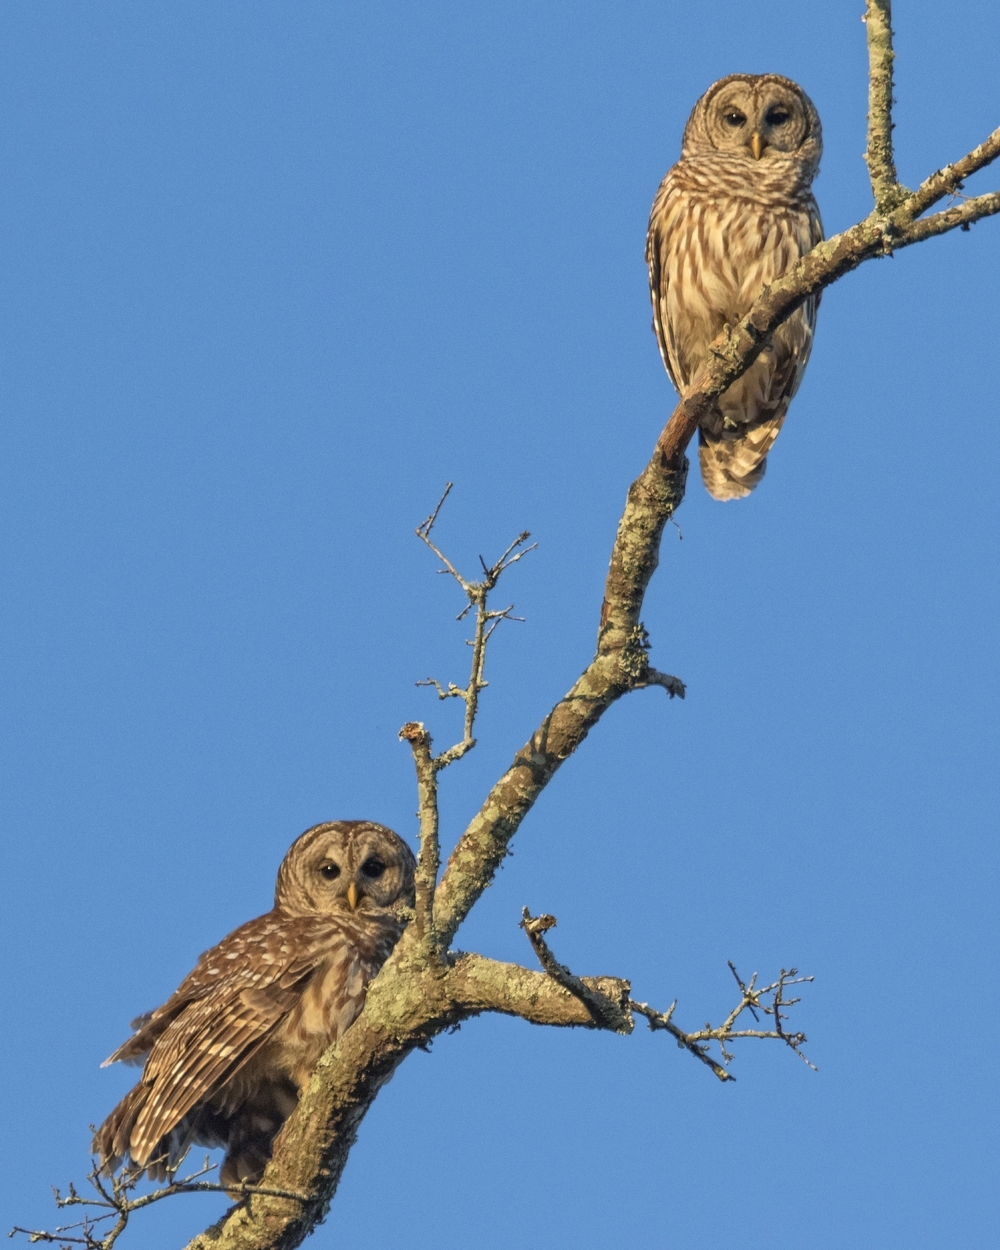 I call the Editor and set up the speaker in the front yard. Soon our pair of Barred Owls is starring down at us.